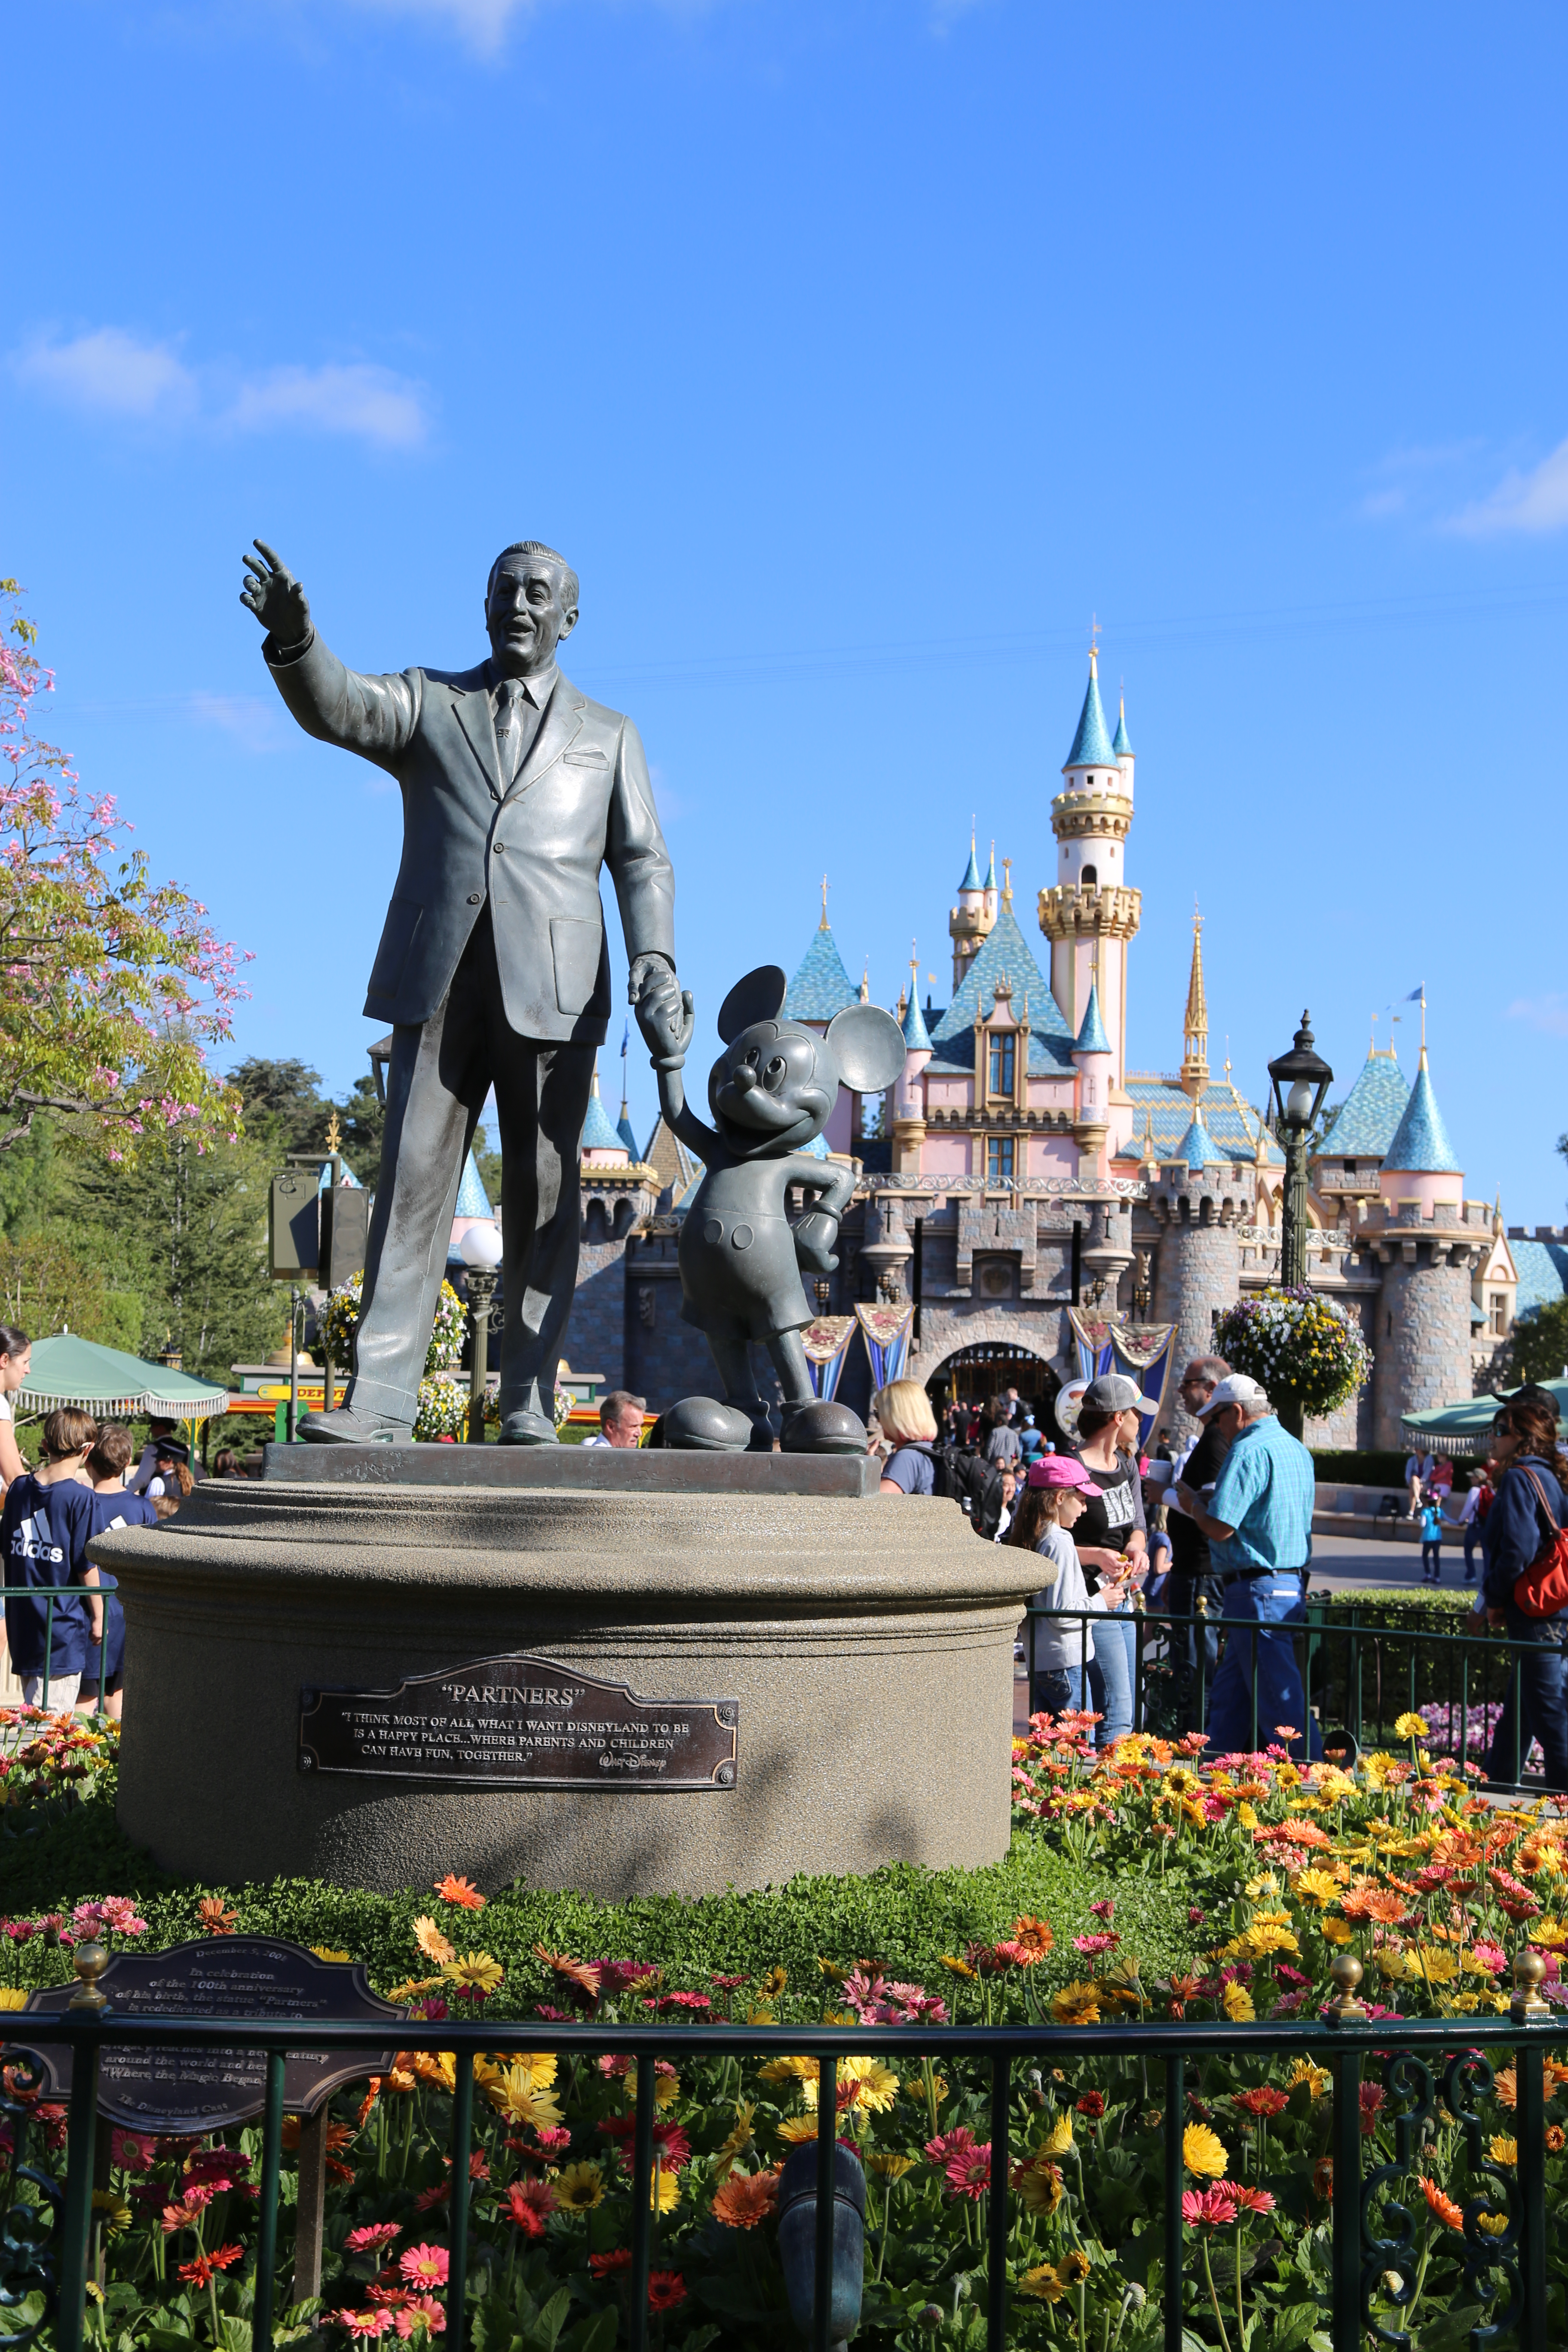 disneyland fun facts interesting facts about disneyland for kids